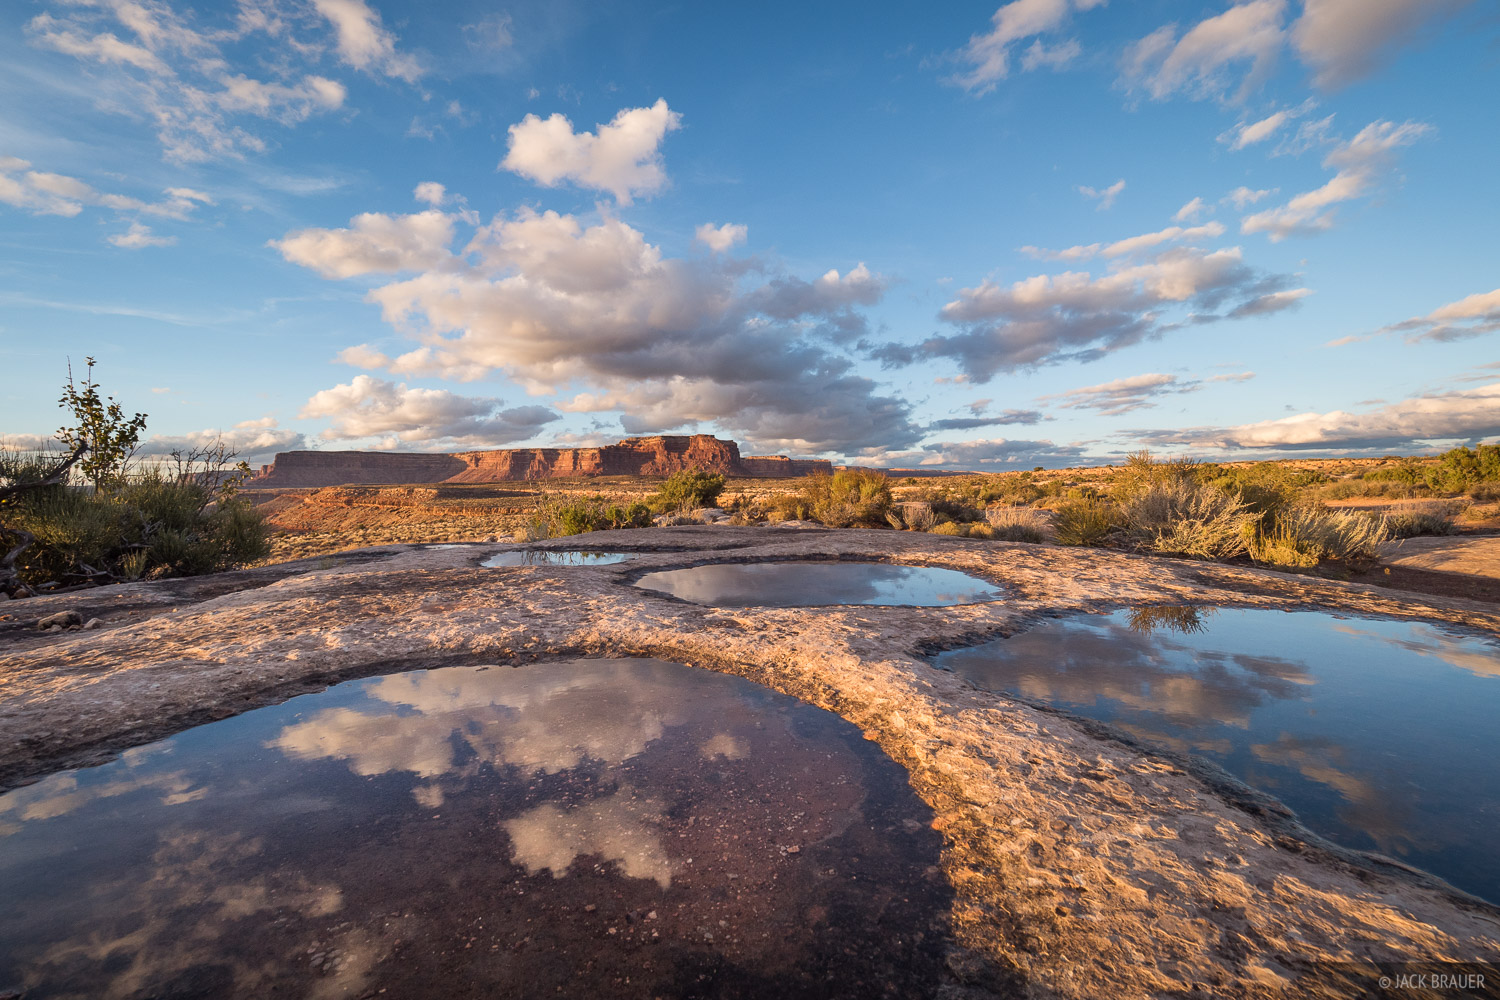 Utah, Cedar Mesa, potholes, Bears Ears National Monument, photo